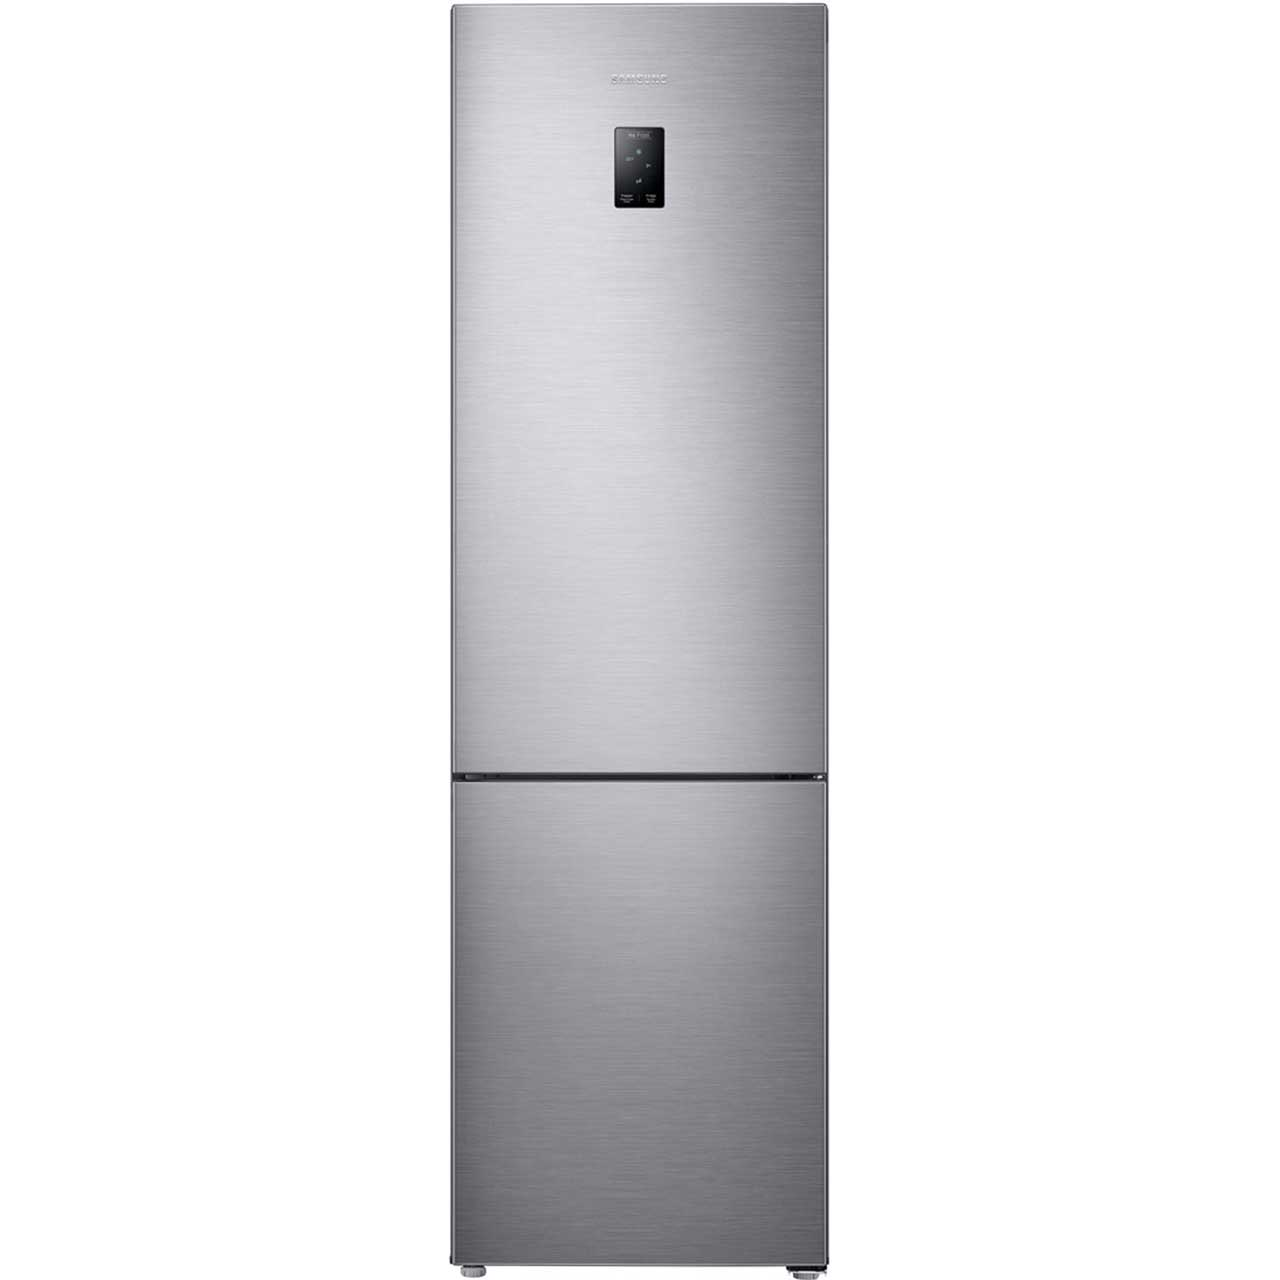 Samsung RB Combi Range RB37J5230SS Free Standing Fridge Freezer Frost Free in Stainless Steel